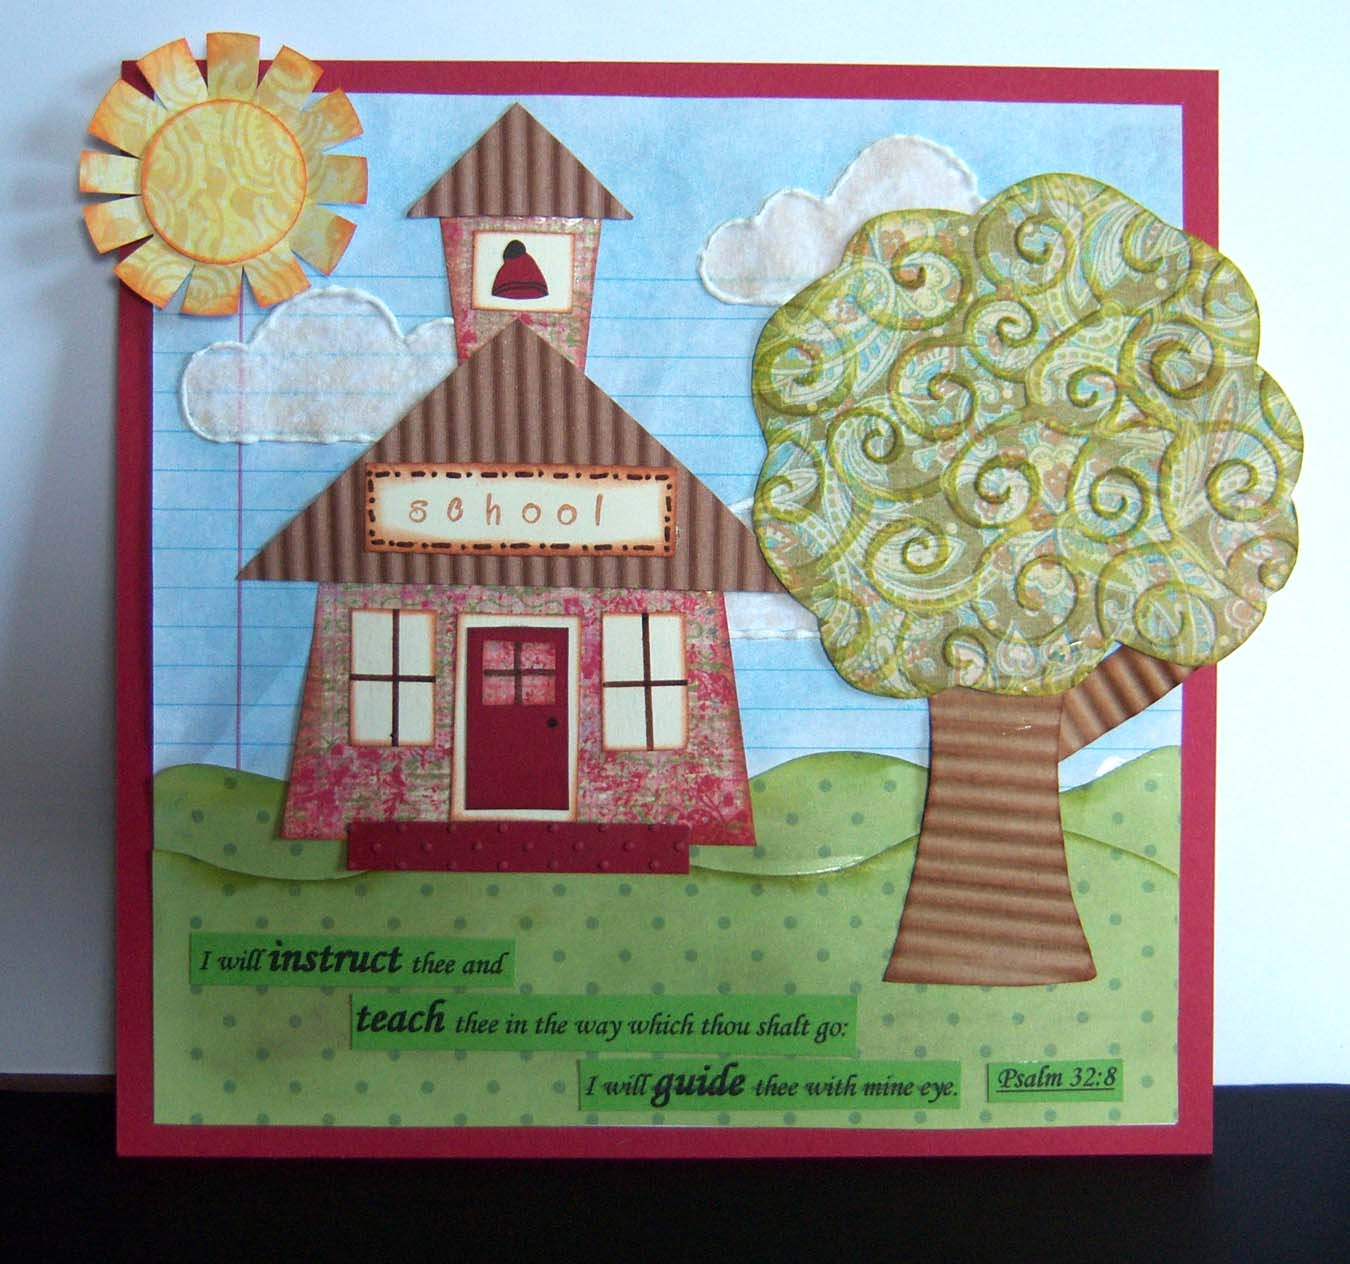 September Bulletin Board Ideas http://estherscardcreations.blogspot.com/2010/09/september-bulletin-board.html